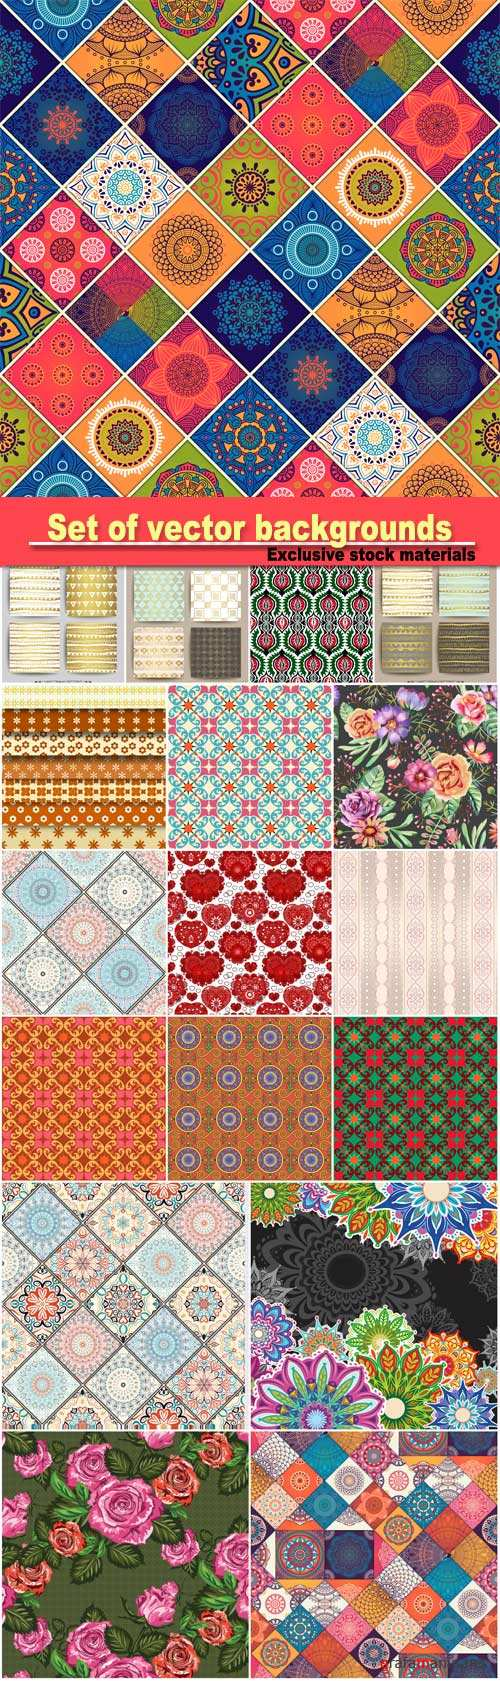 Set of vector backgrounds with various patterns and ornaments